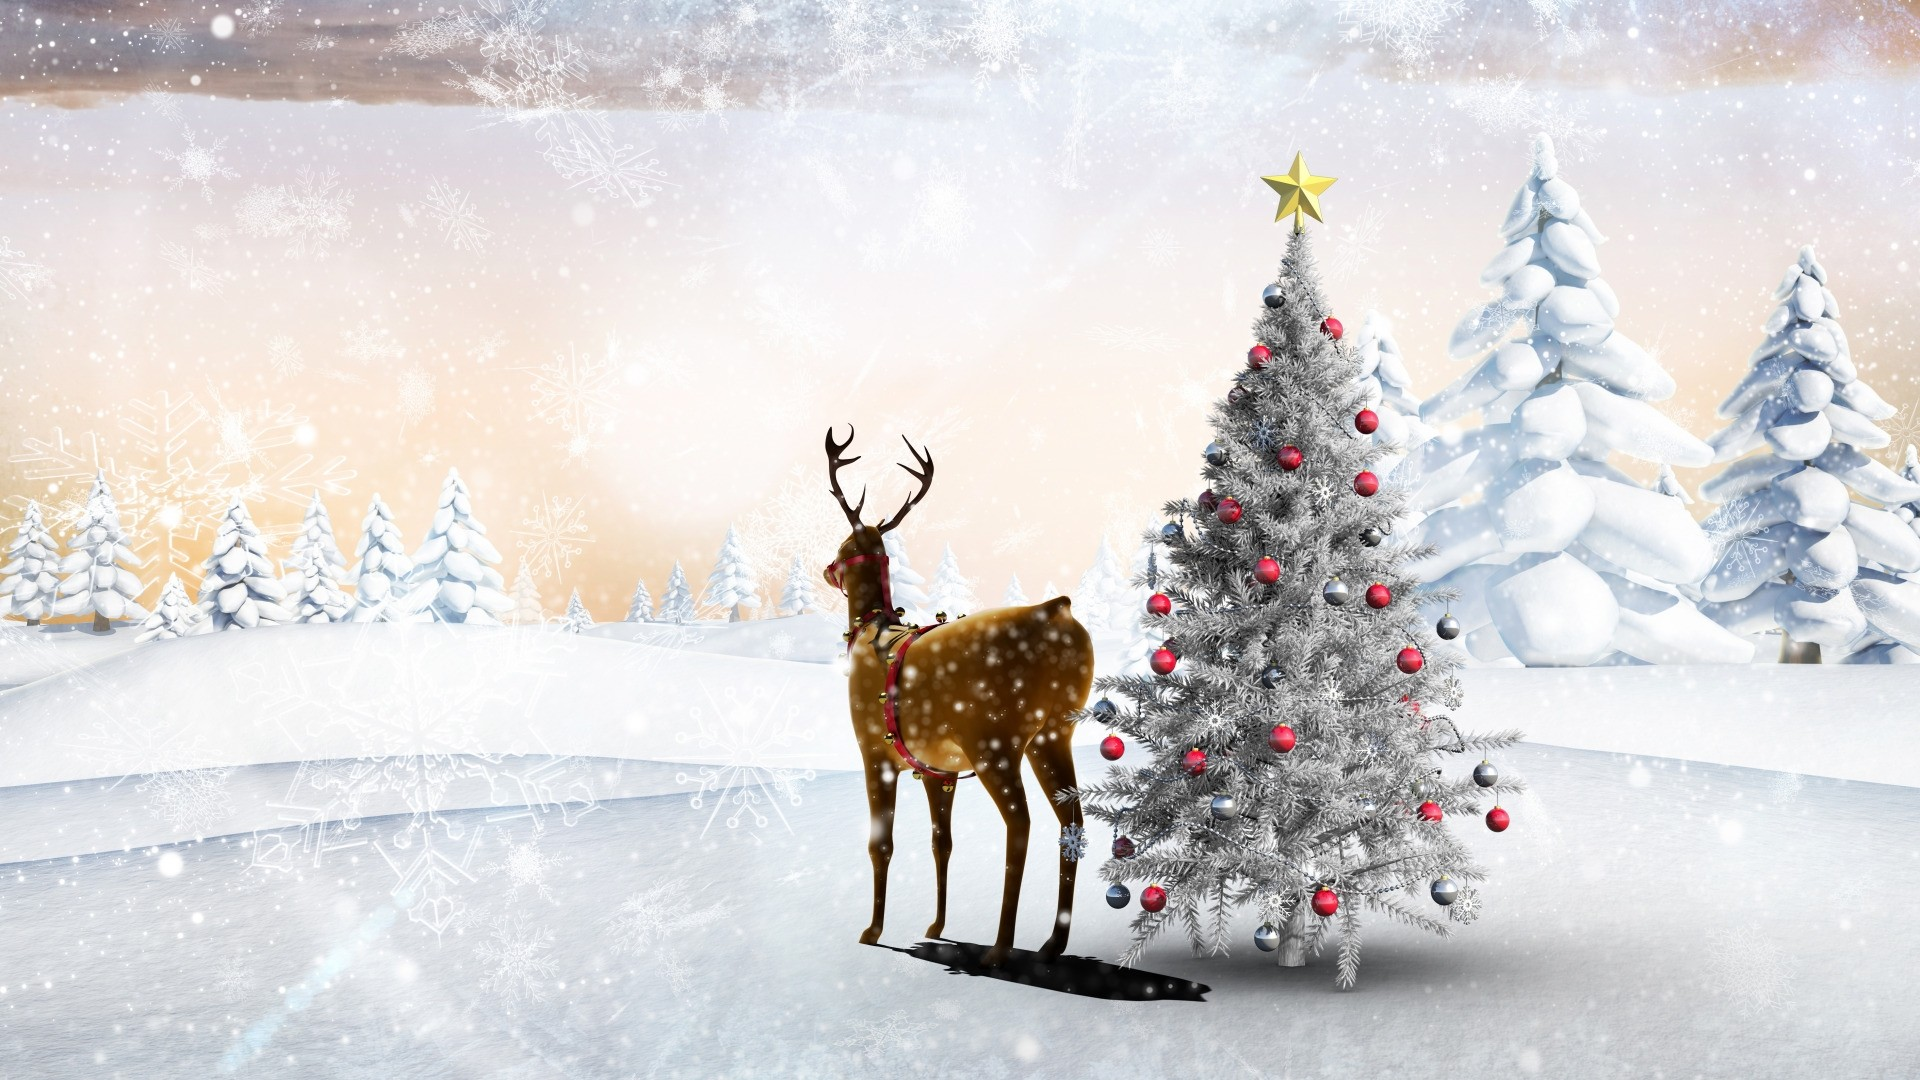 Reindeer HD Wallpaper